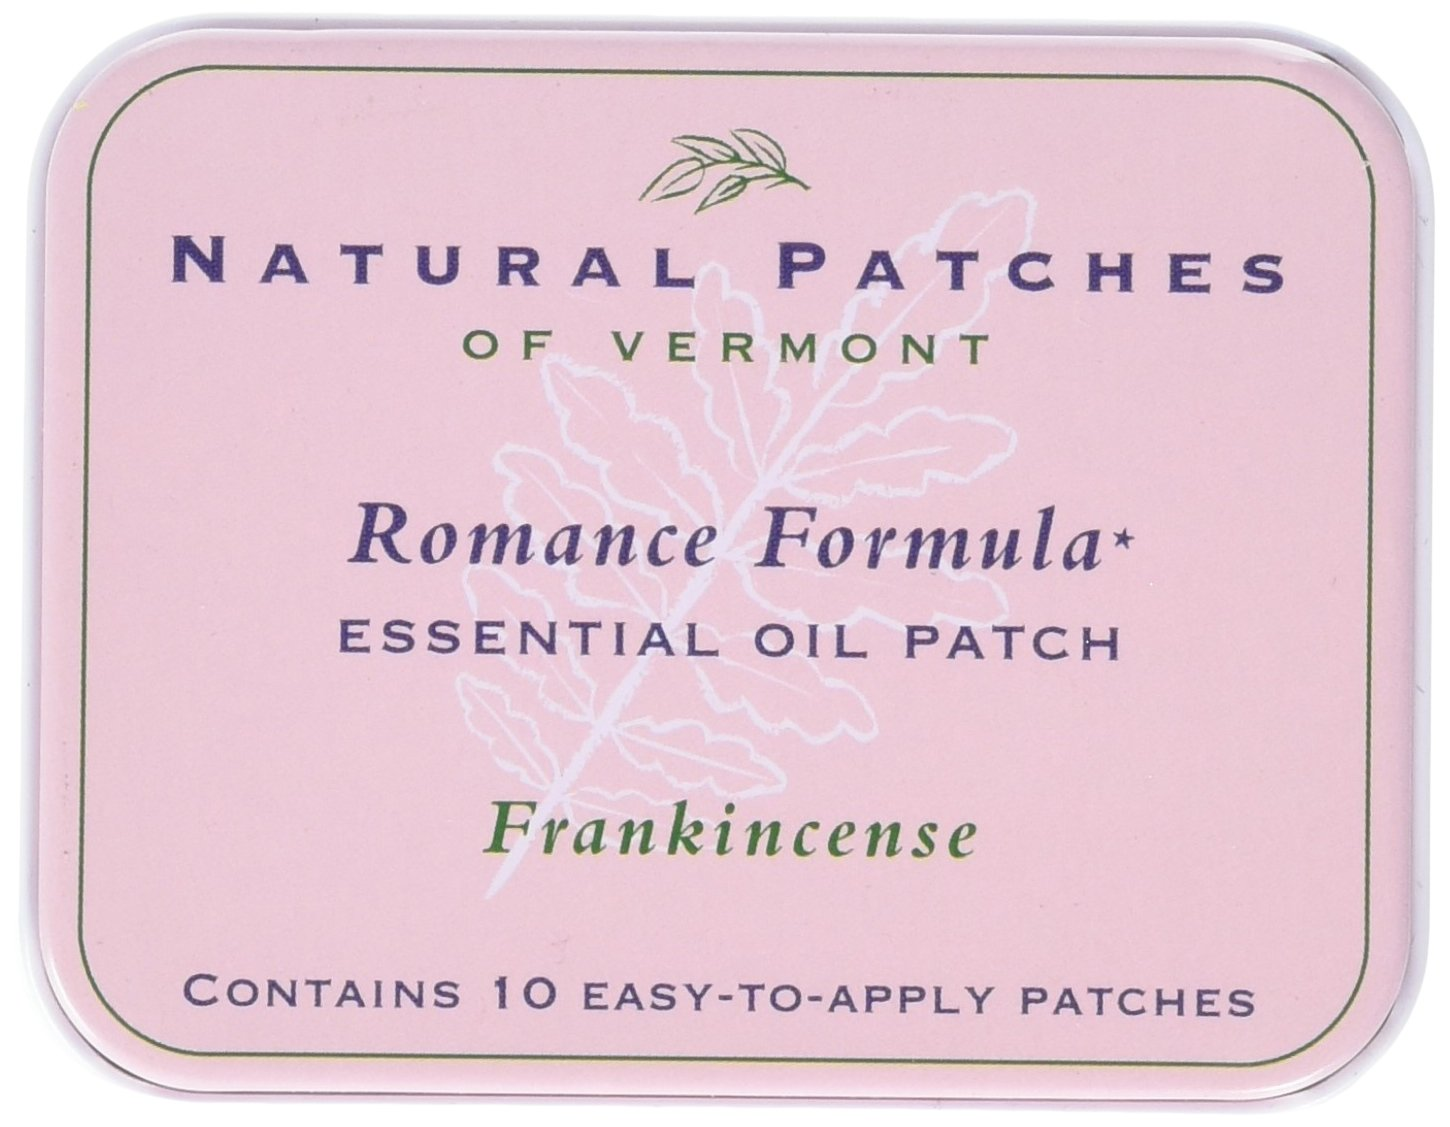 Natural Patches of Vermont Romance Formula Essential Oil Body Patches, Frankincense, 2.6 Ounce